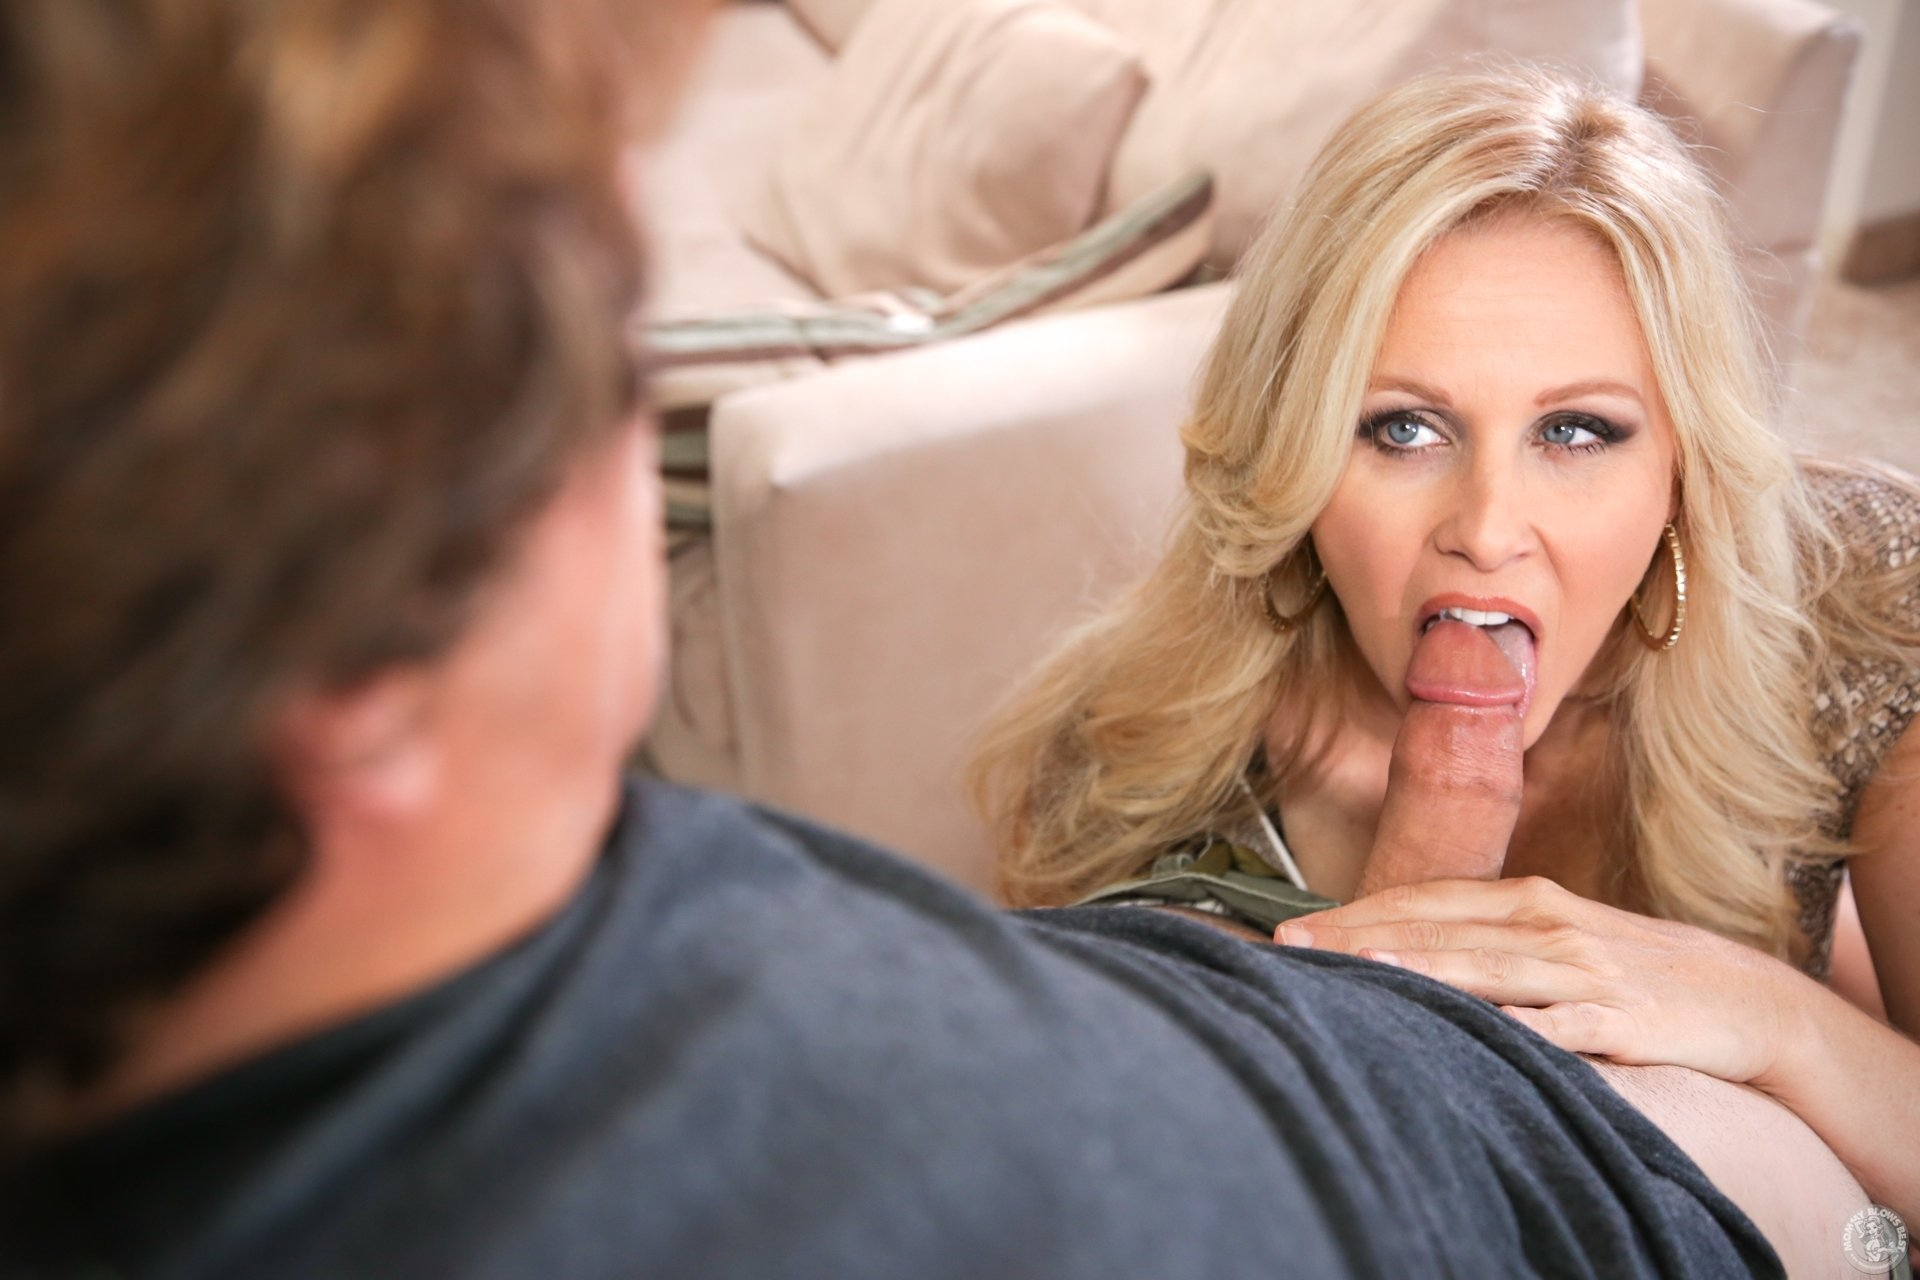 Cheating full porn movies #1